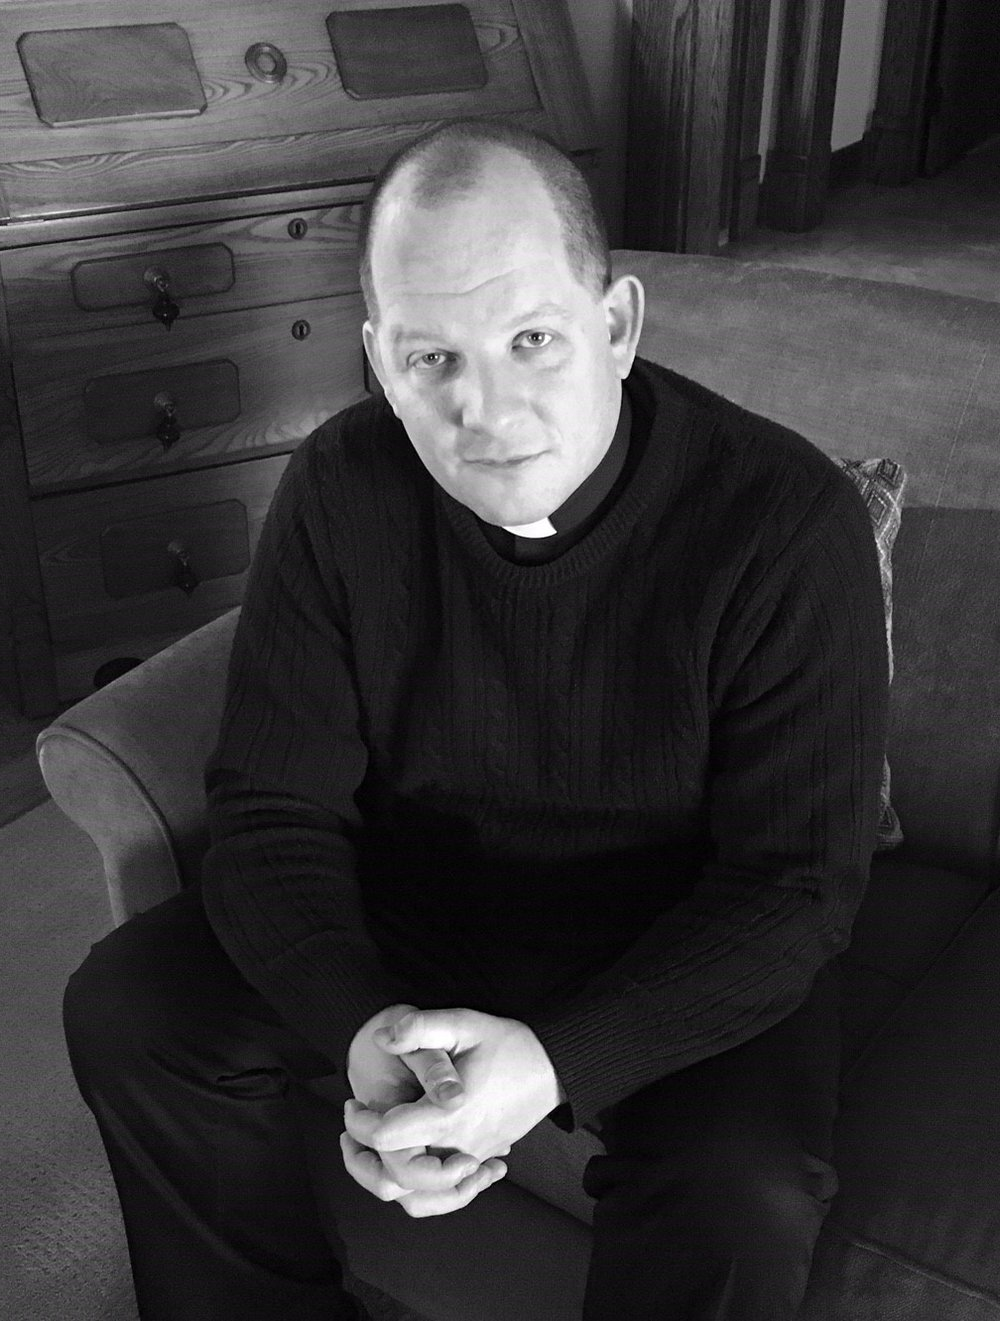 fr hagan sitting.jpg